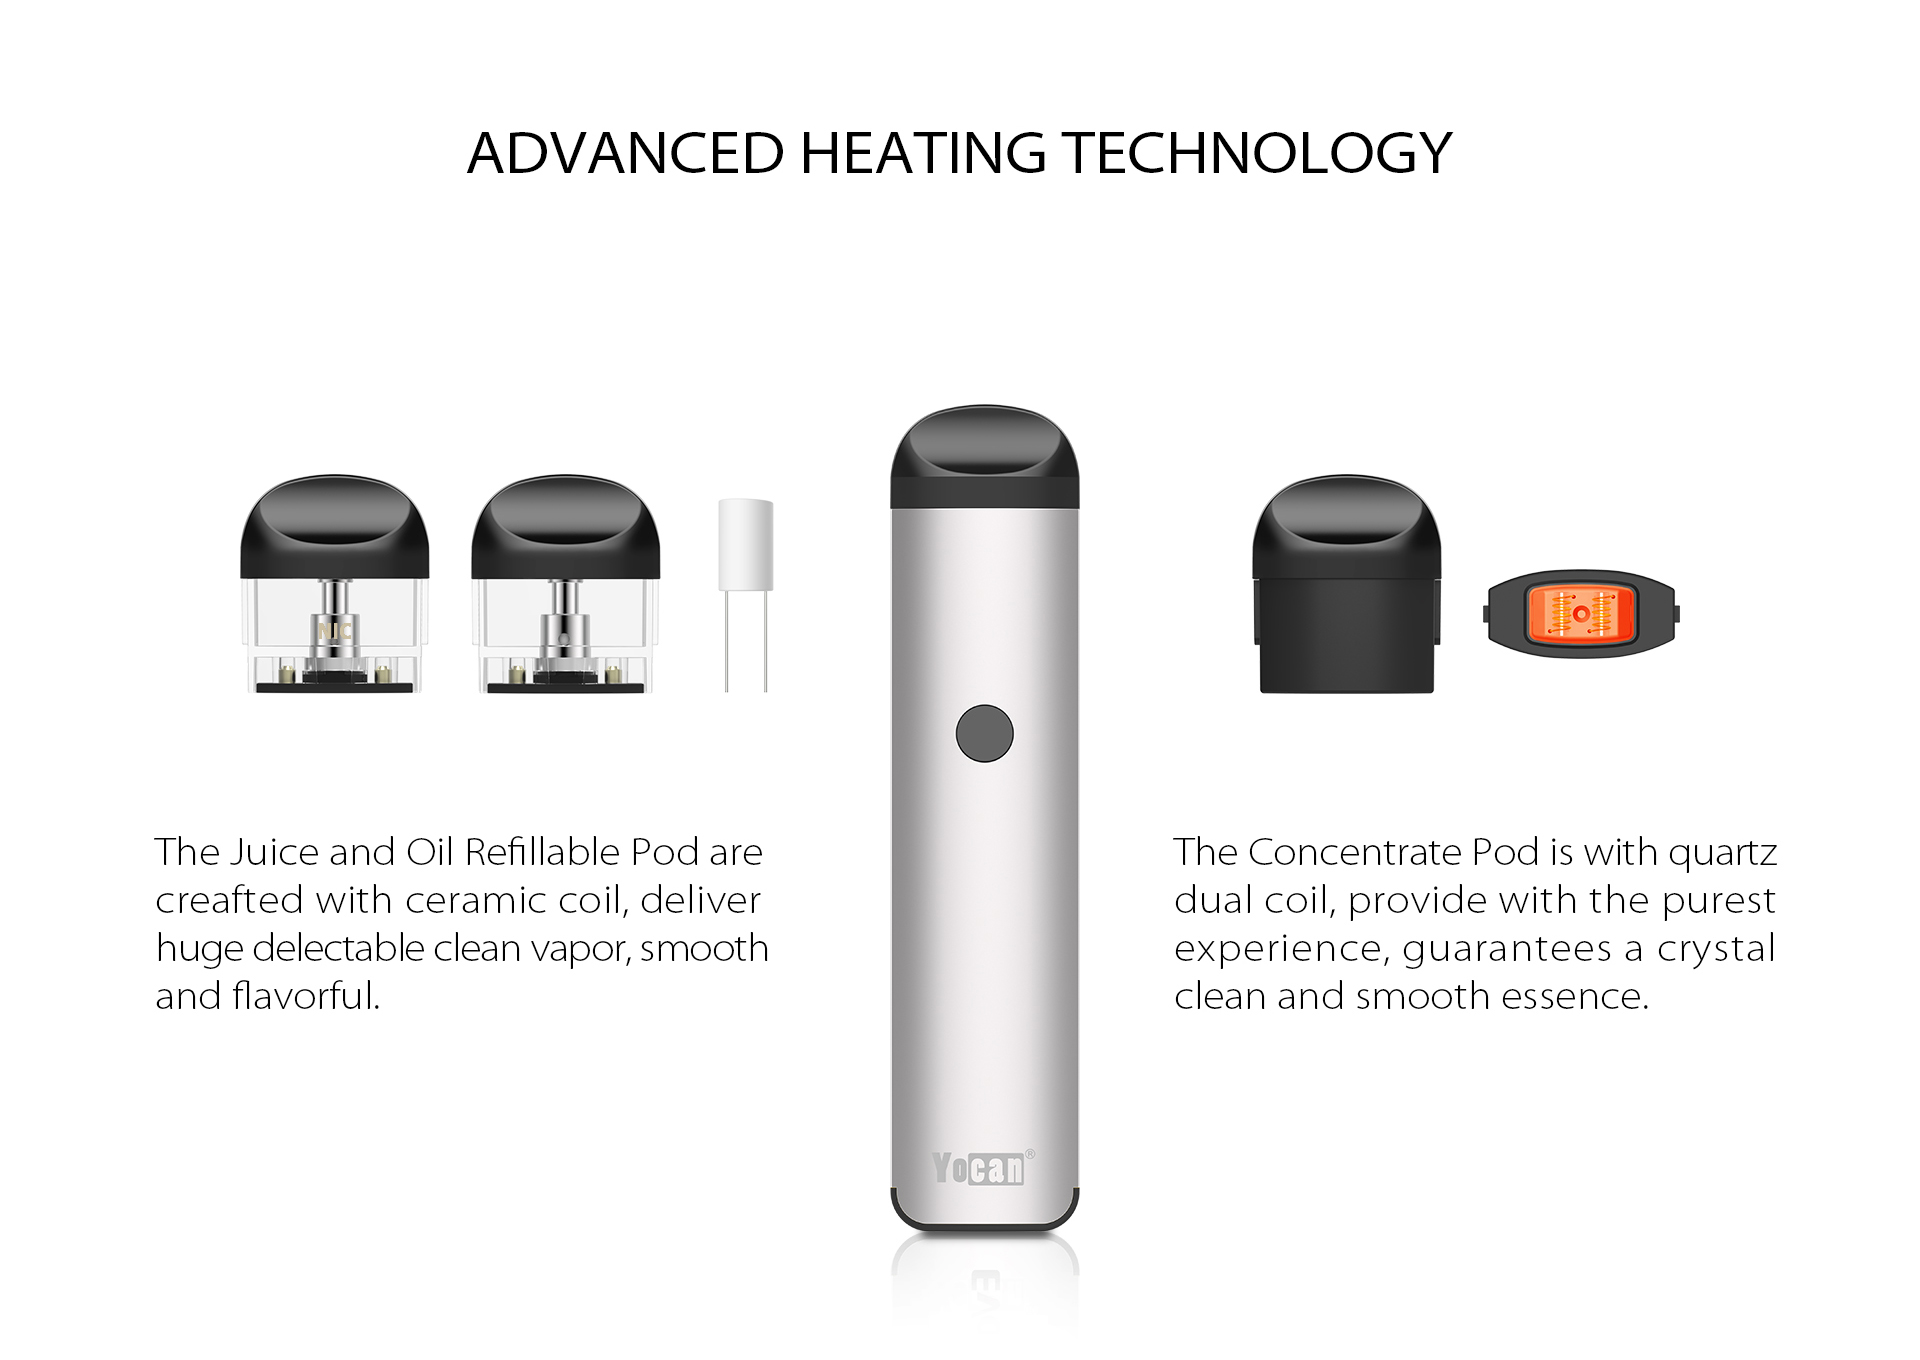 Yocan Evolve 2.0 features the Advanced Heating Technology